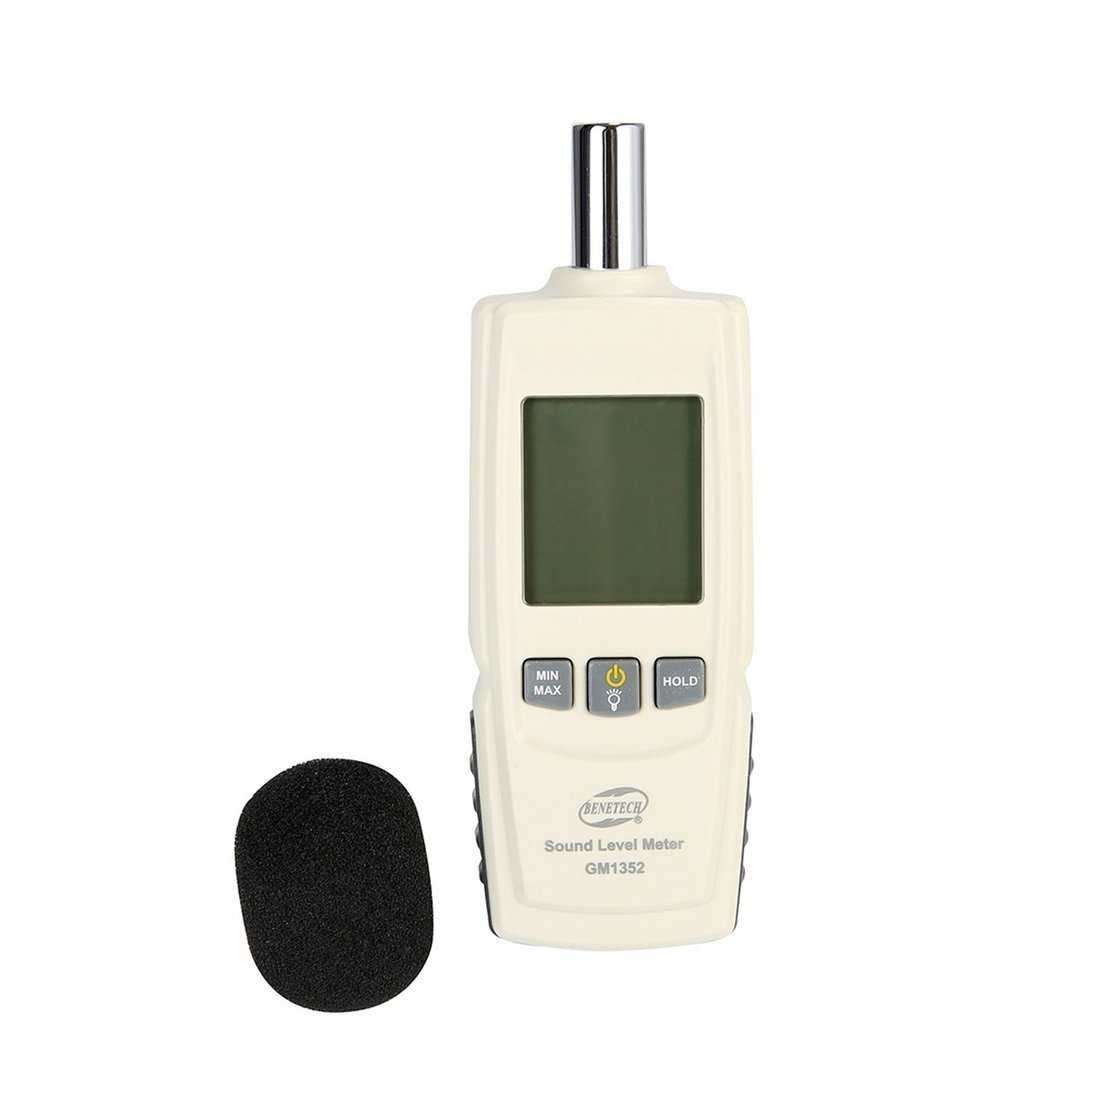 BENETECH GM1352 30-130dB Digital Sound Level Meter Bruit Contr/ôle de Volume Audio Test dB D/écibels D/étecteur avec R/étro/éclairage LCD